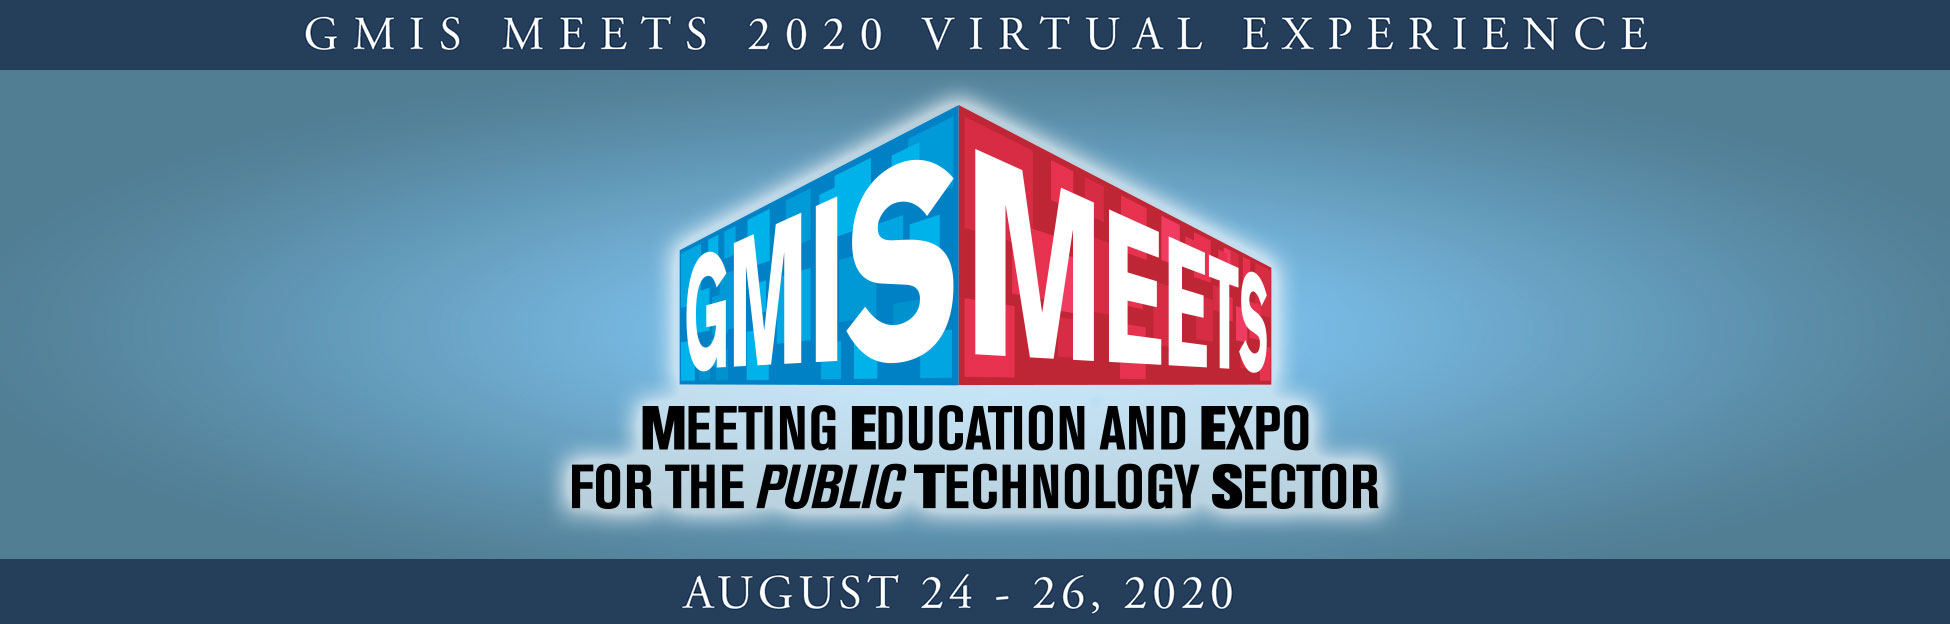 GMIS MEETS 2020 Web banner graphic